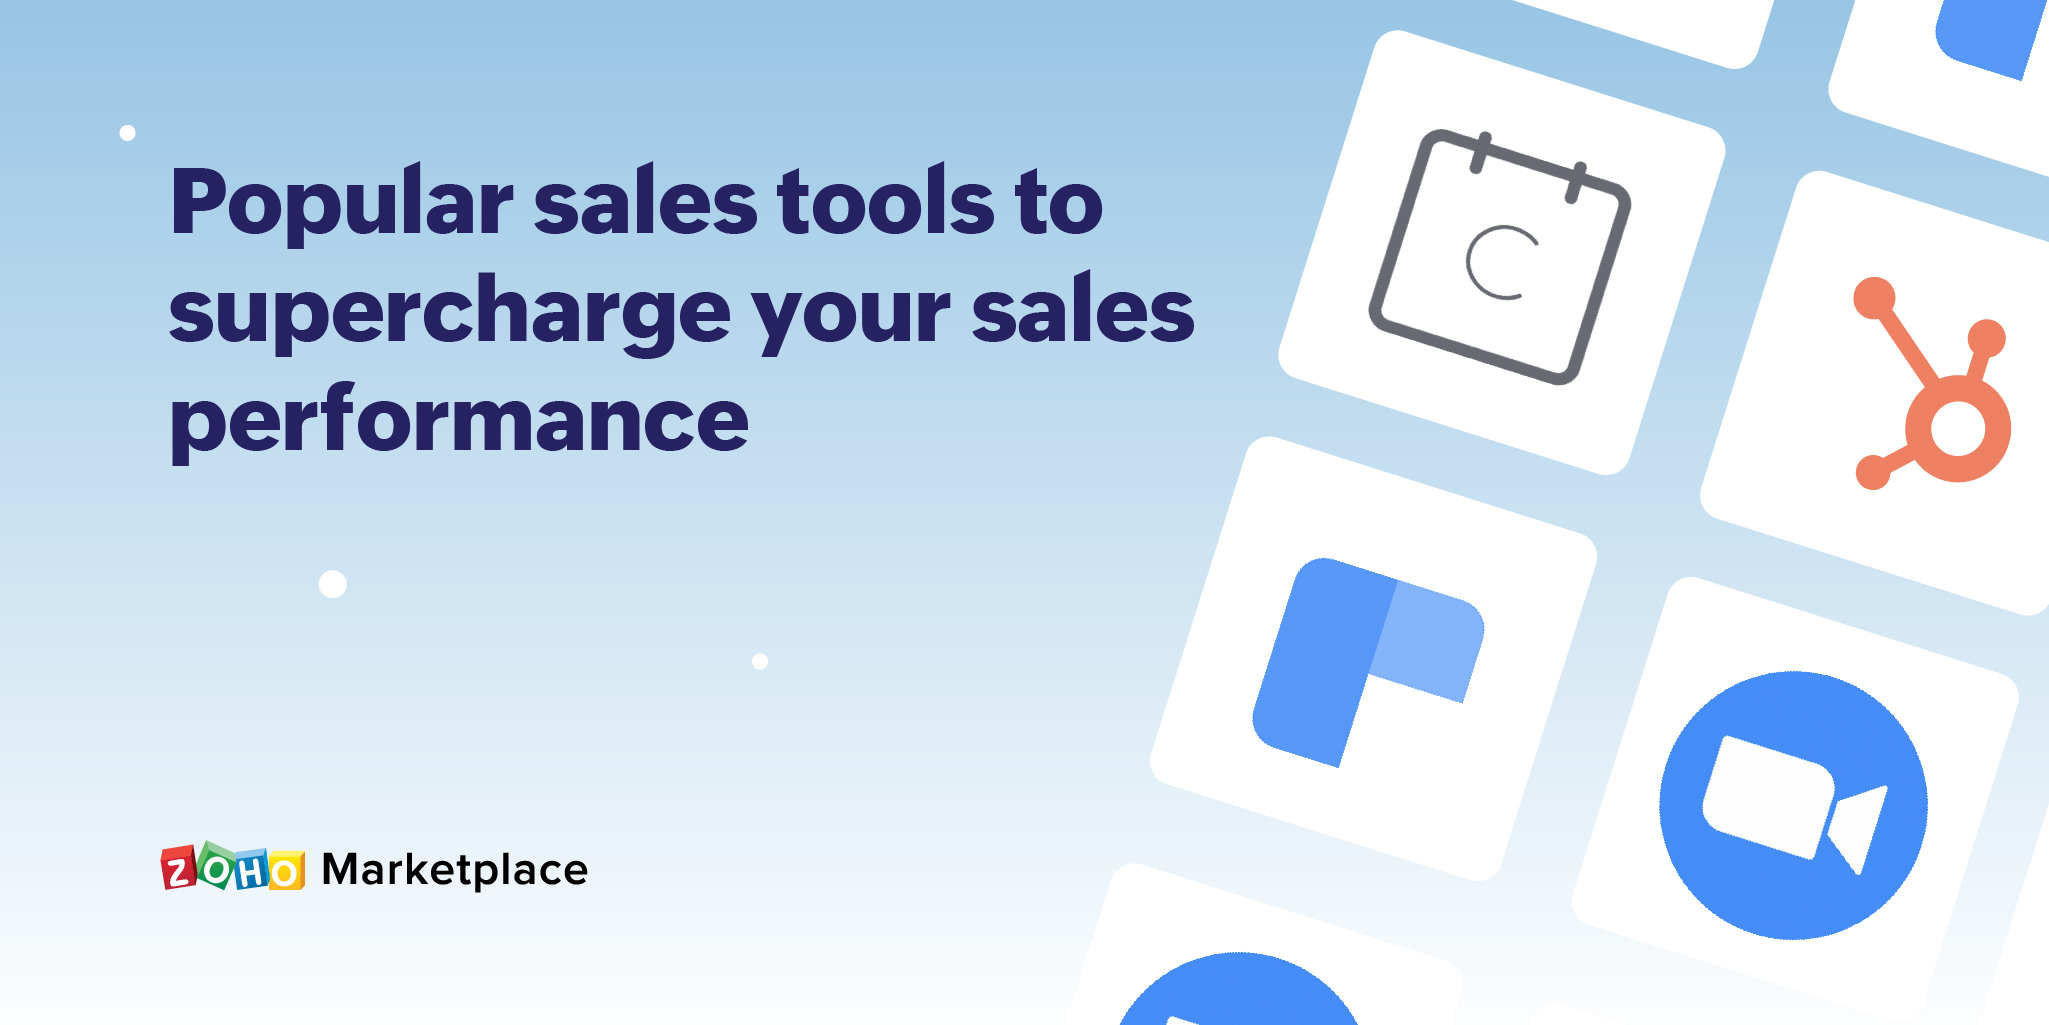 Sales series #1: Popular sales tools to supercharge your sales performance